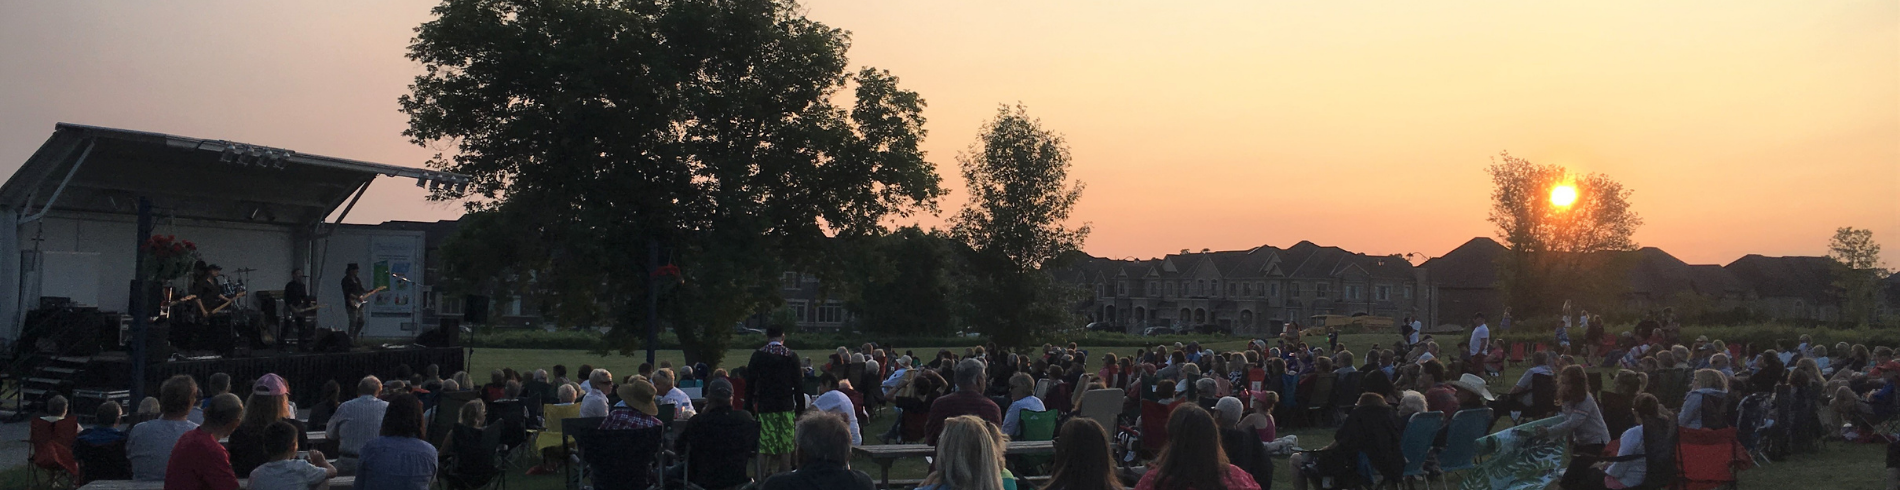 People at an outdoor concert